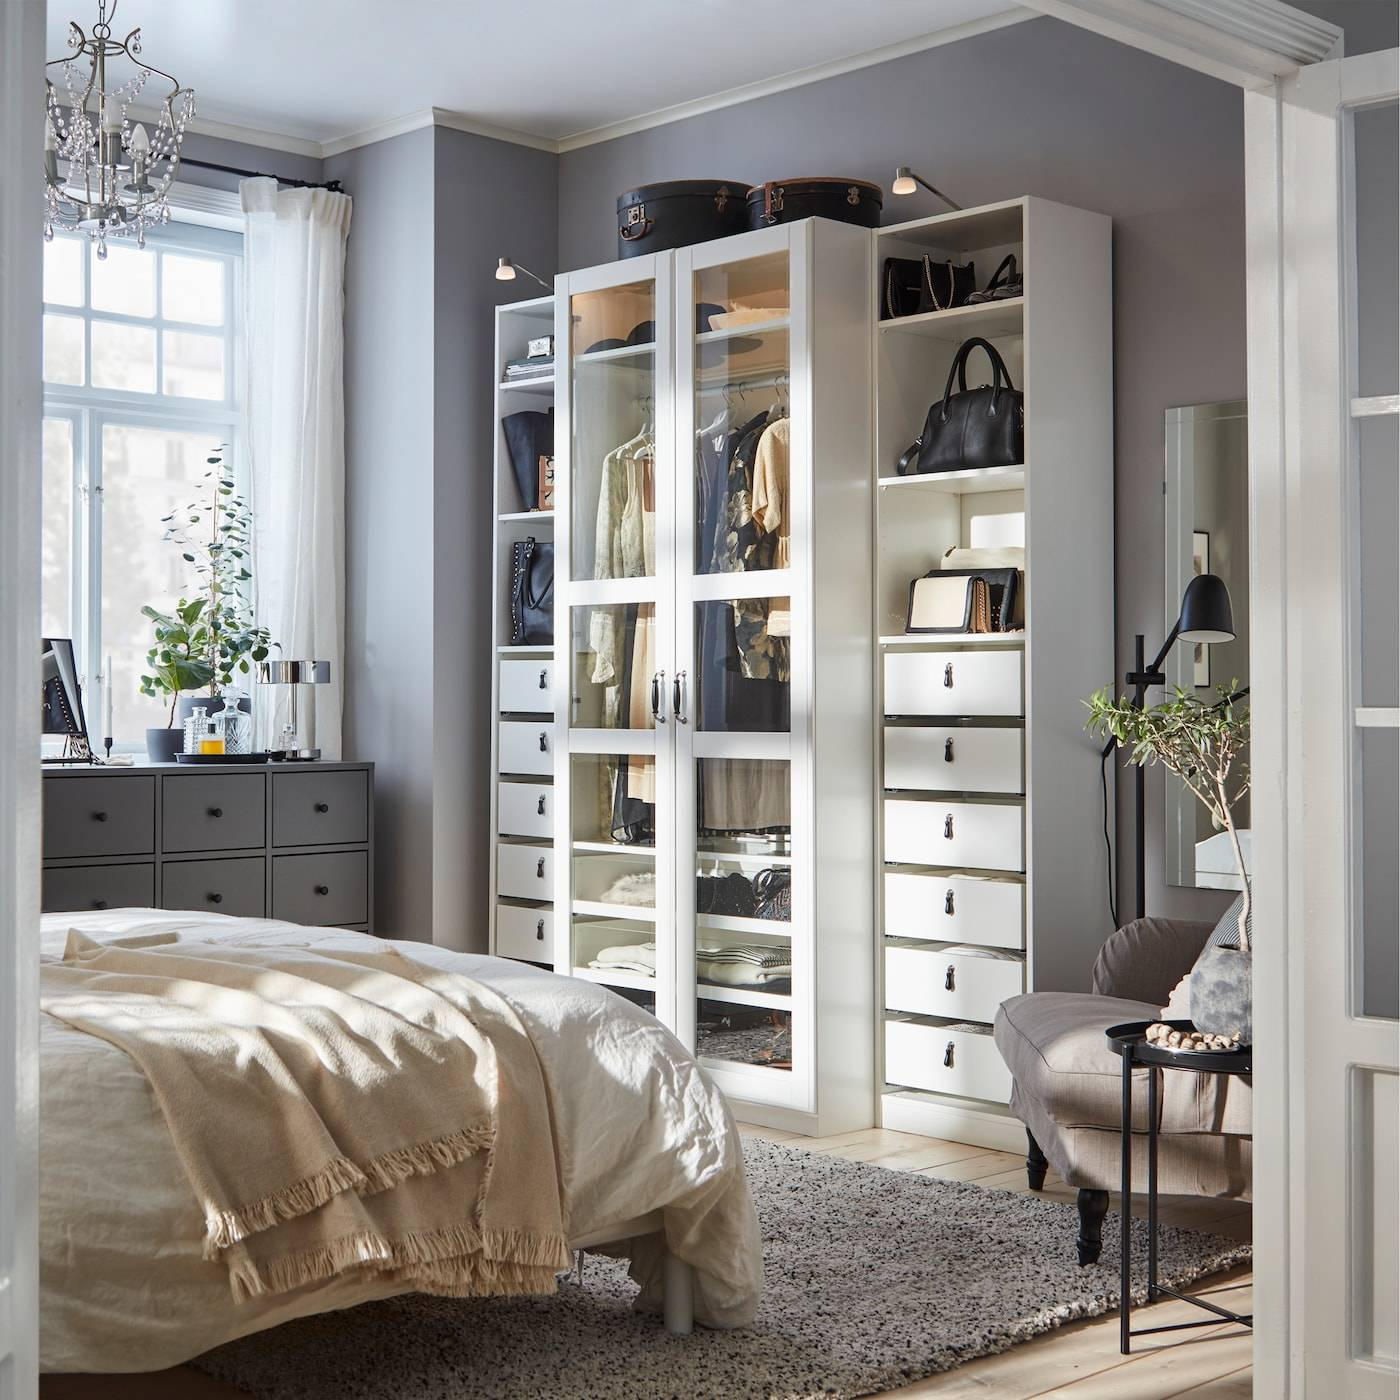 a bedroom with a white wardrobe with glass doors a dark grey 8175e eec03eecb0ce532cd1ad